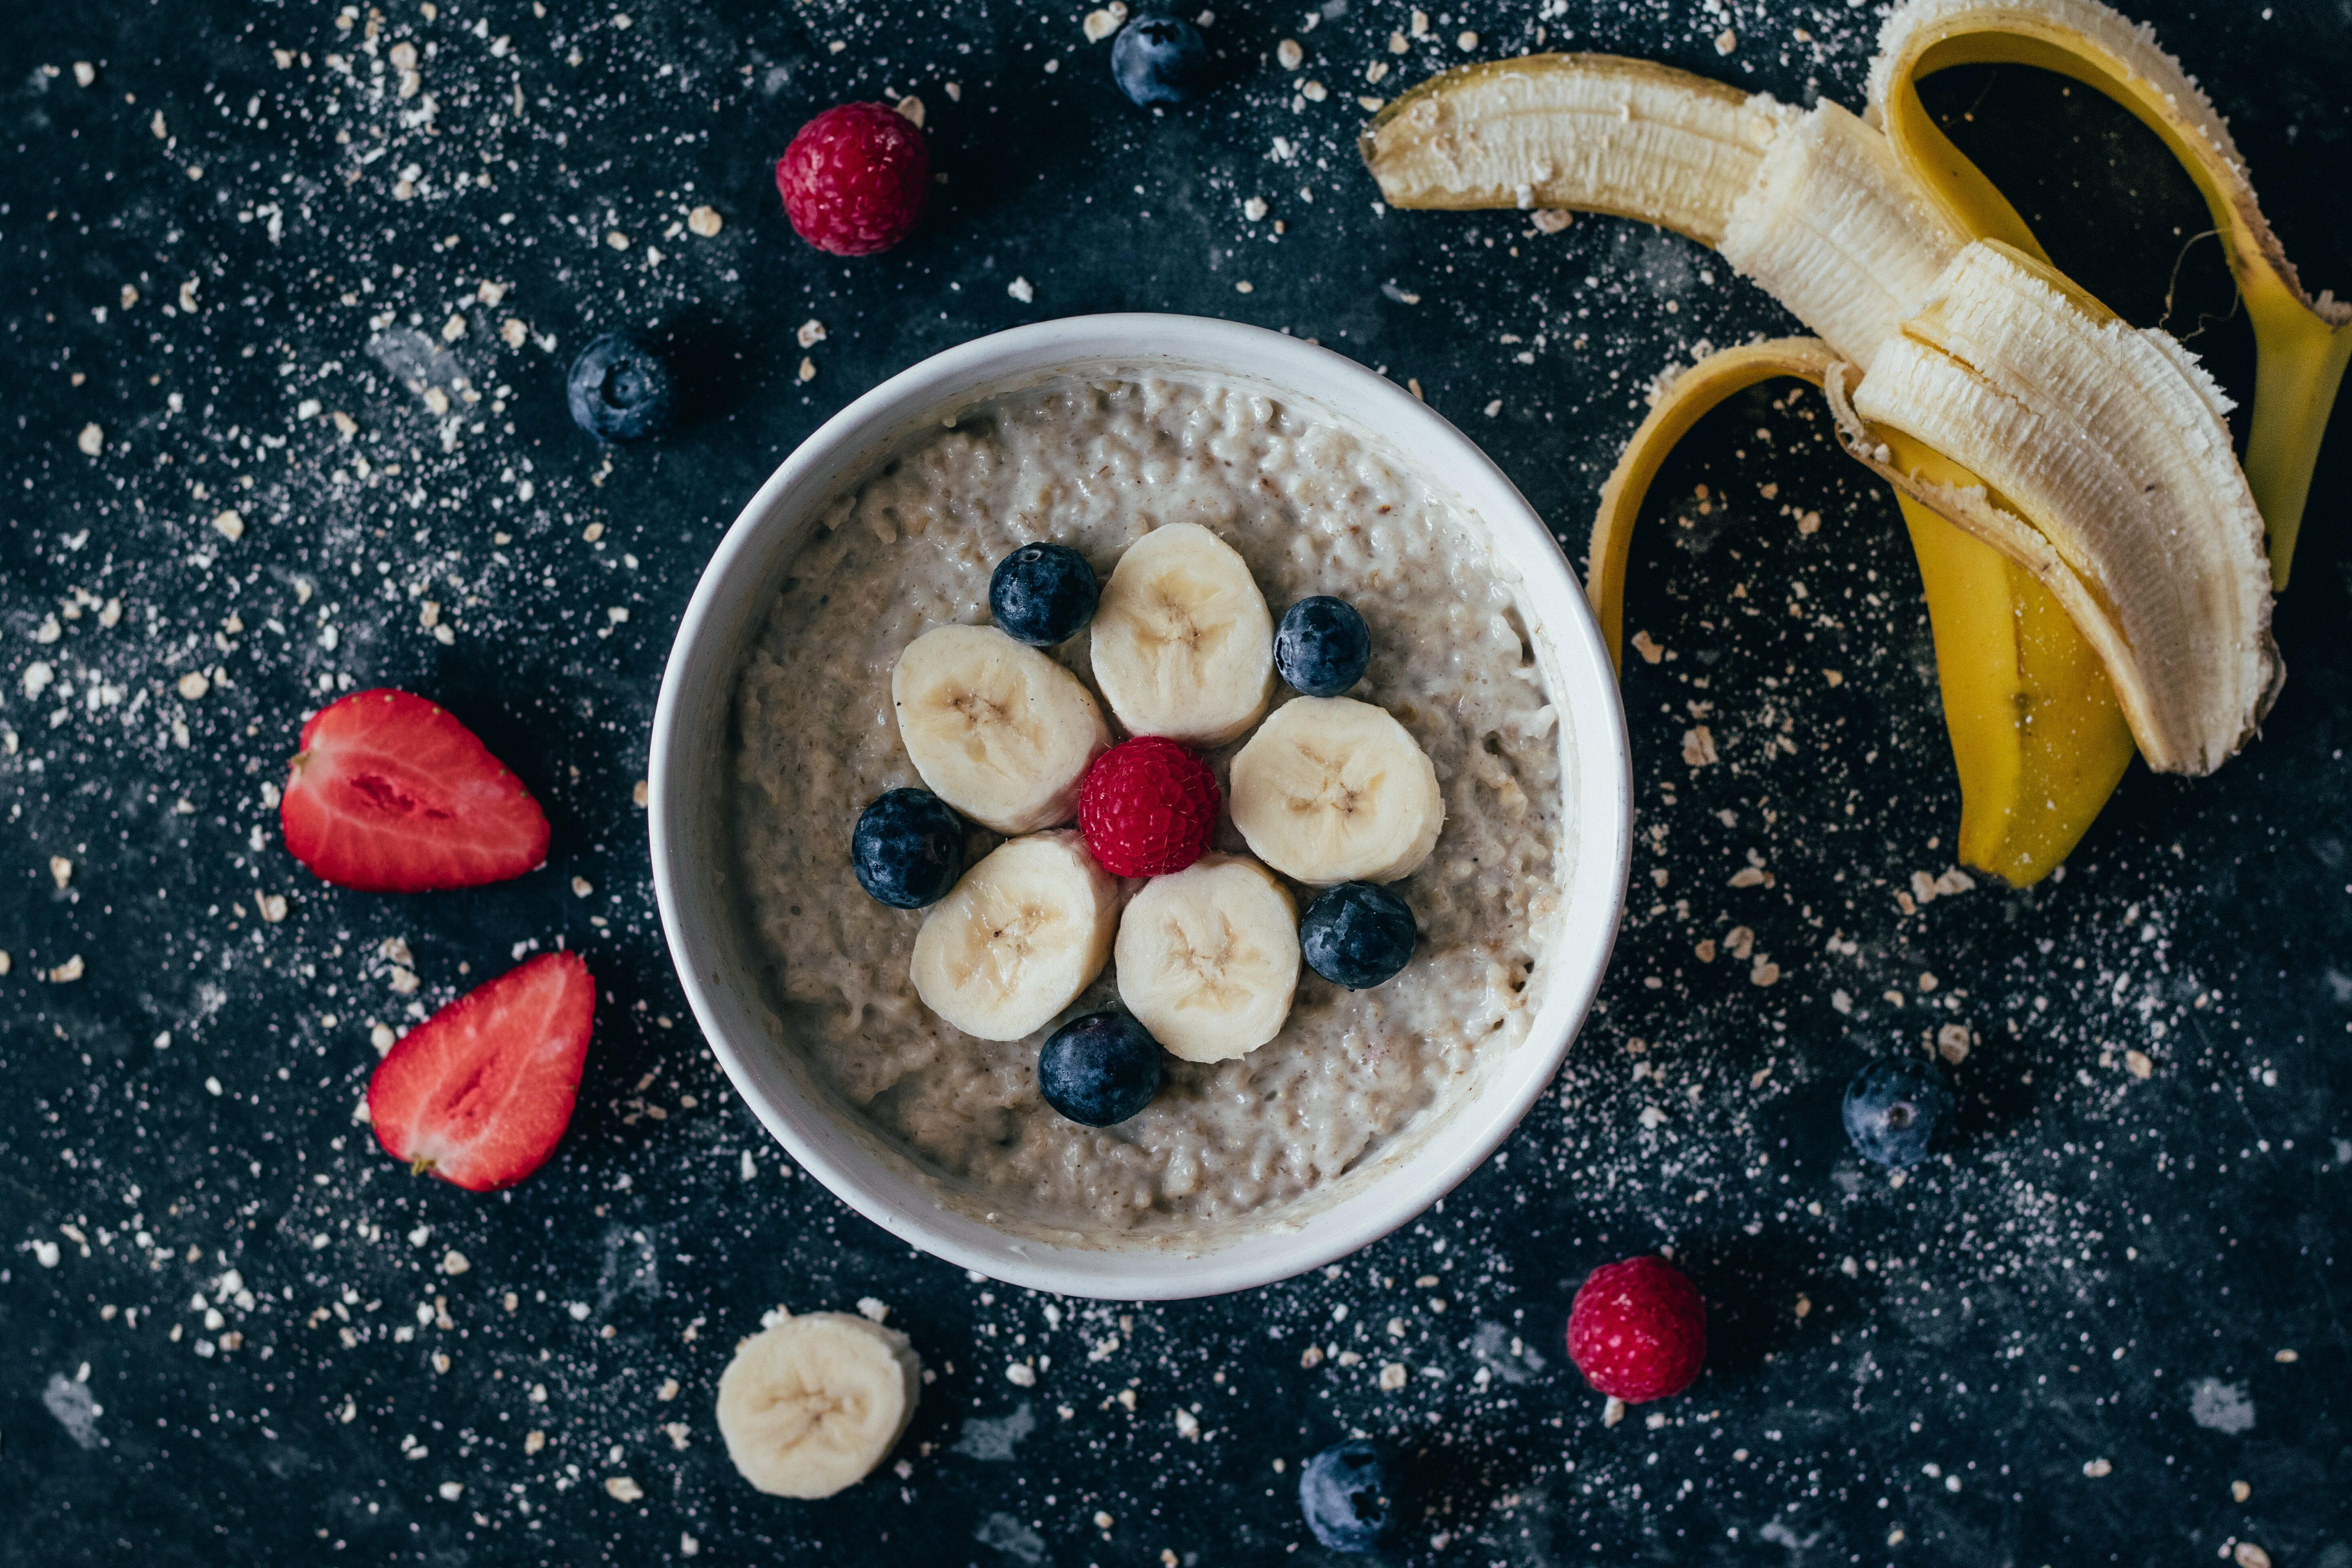 Bowl of Oatmeal with Bananas Blueberries and Raspberries